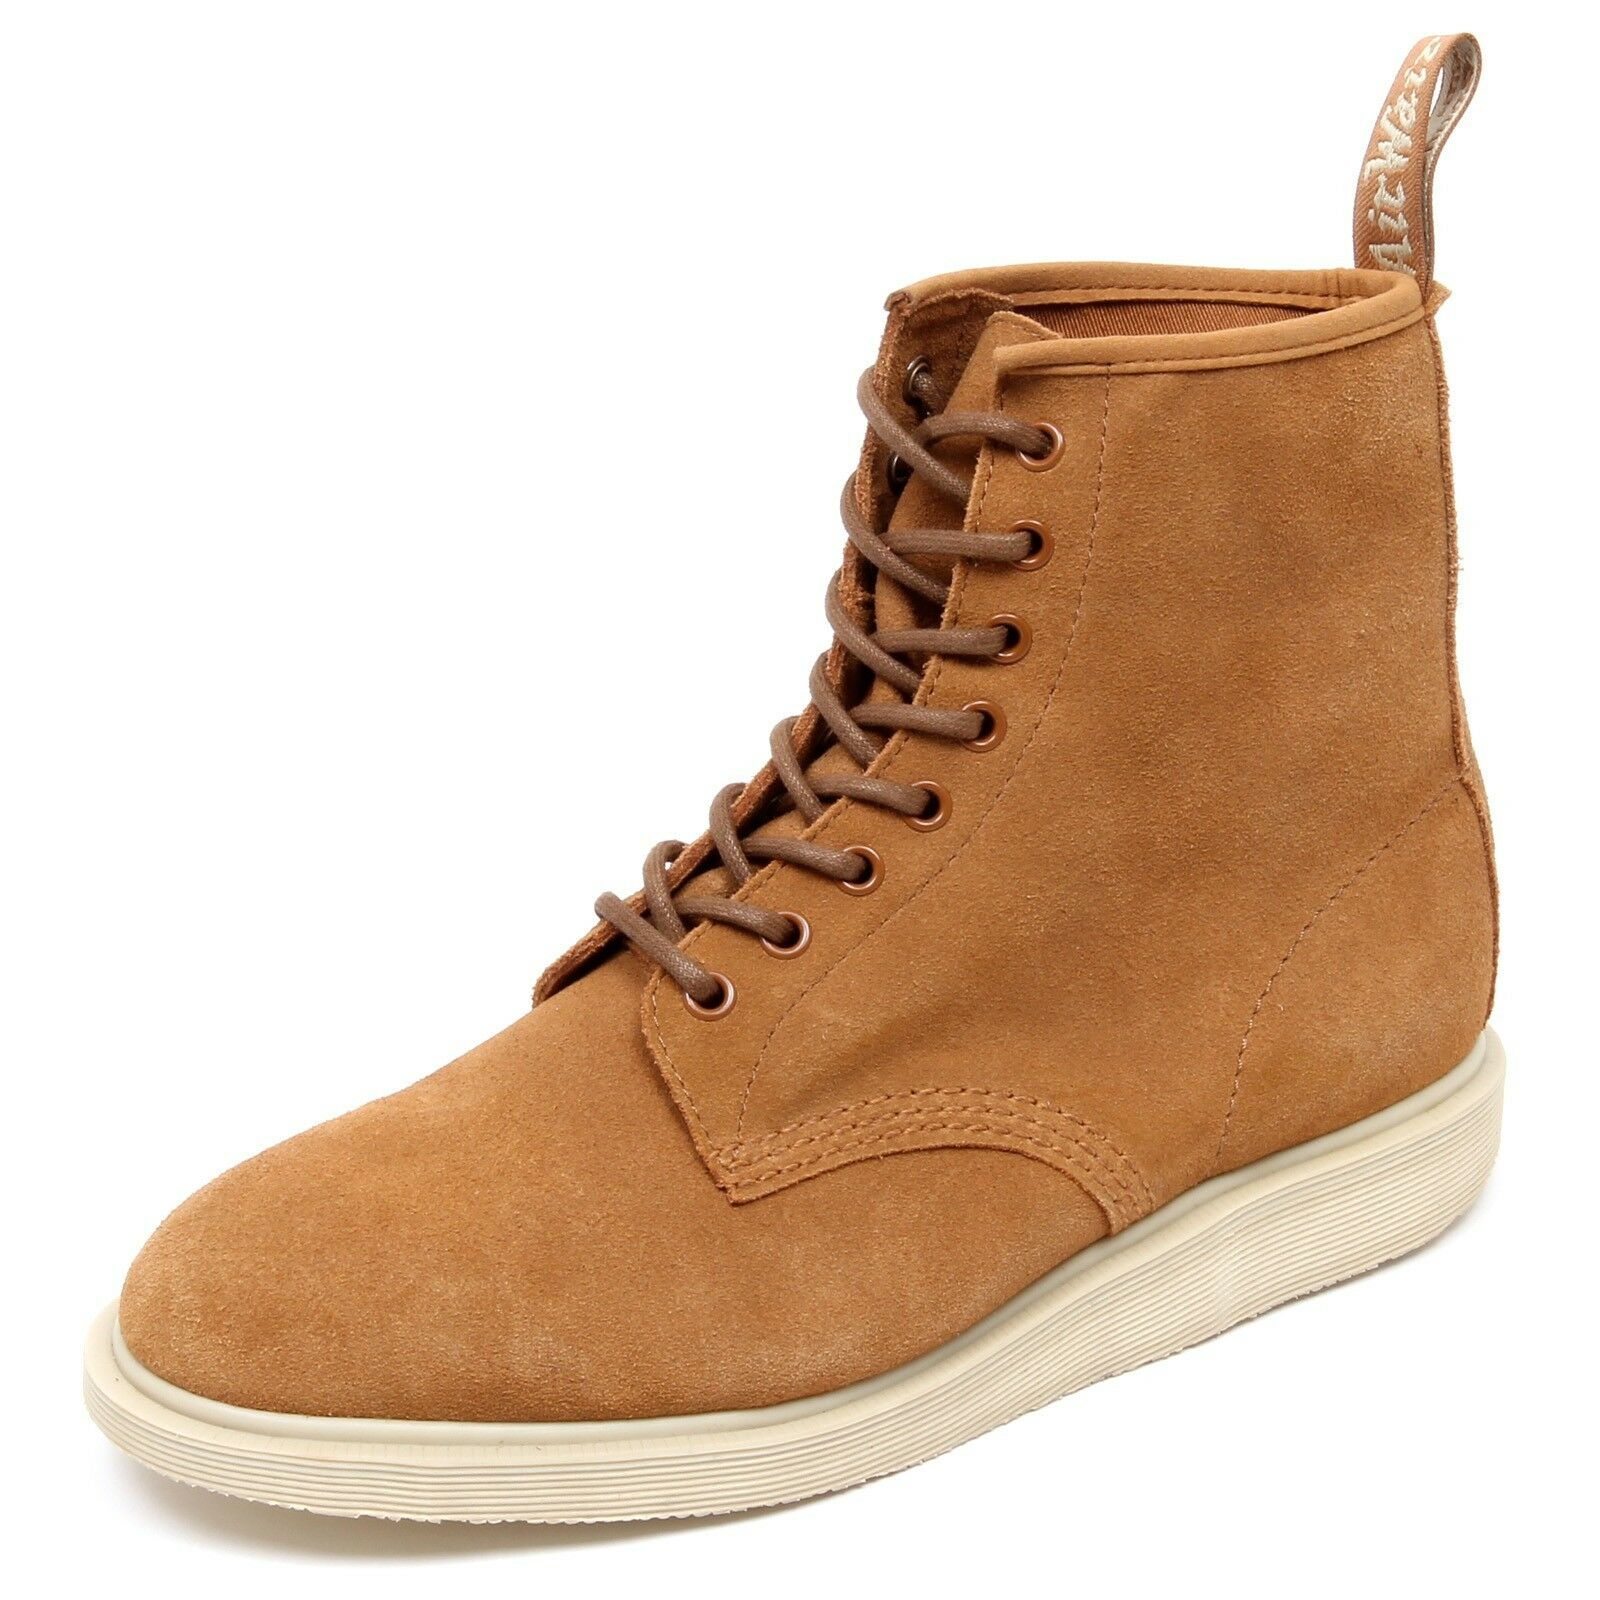 D3468 (without box) sneaker uomo DR. MARTENS beige scuro boot shoe man